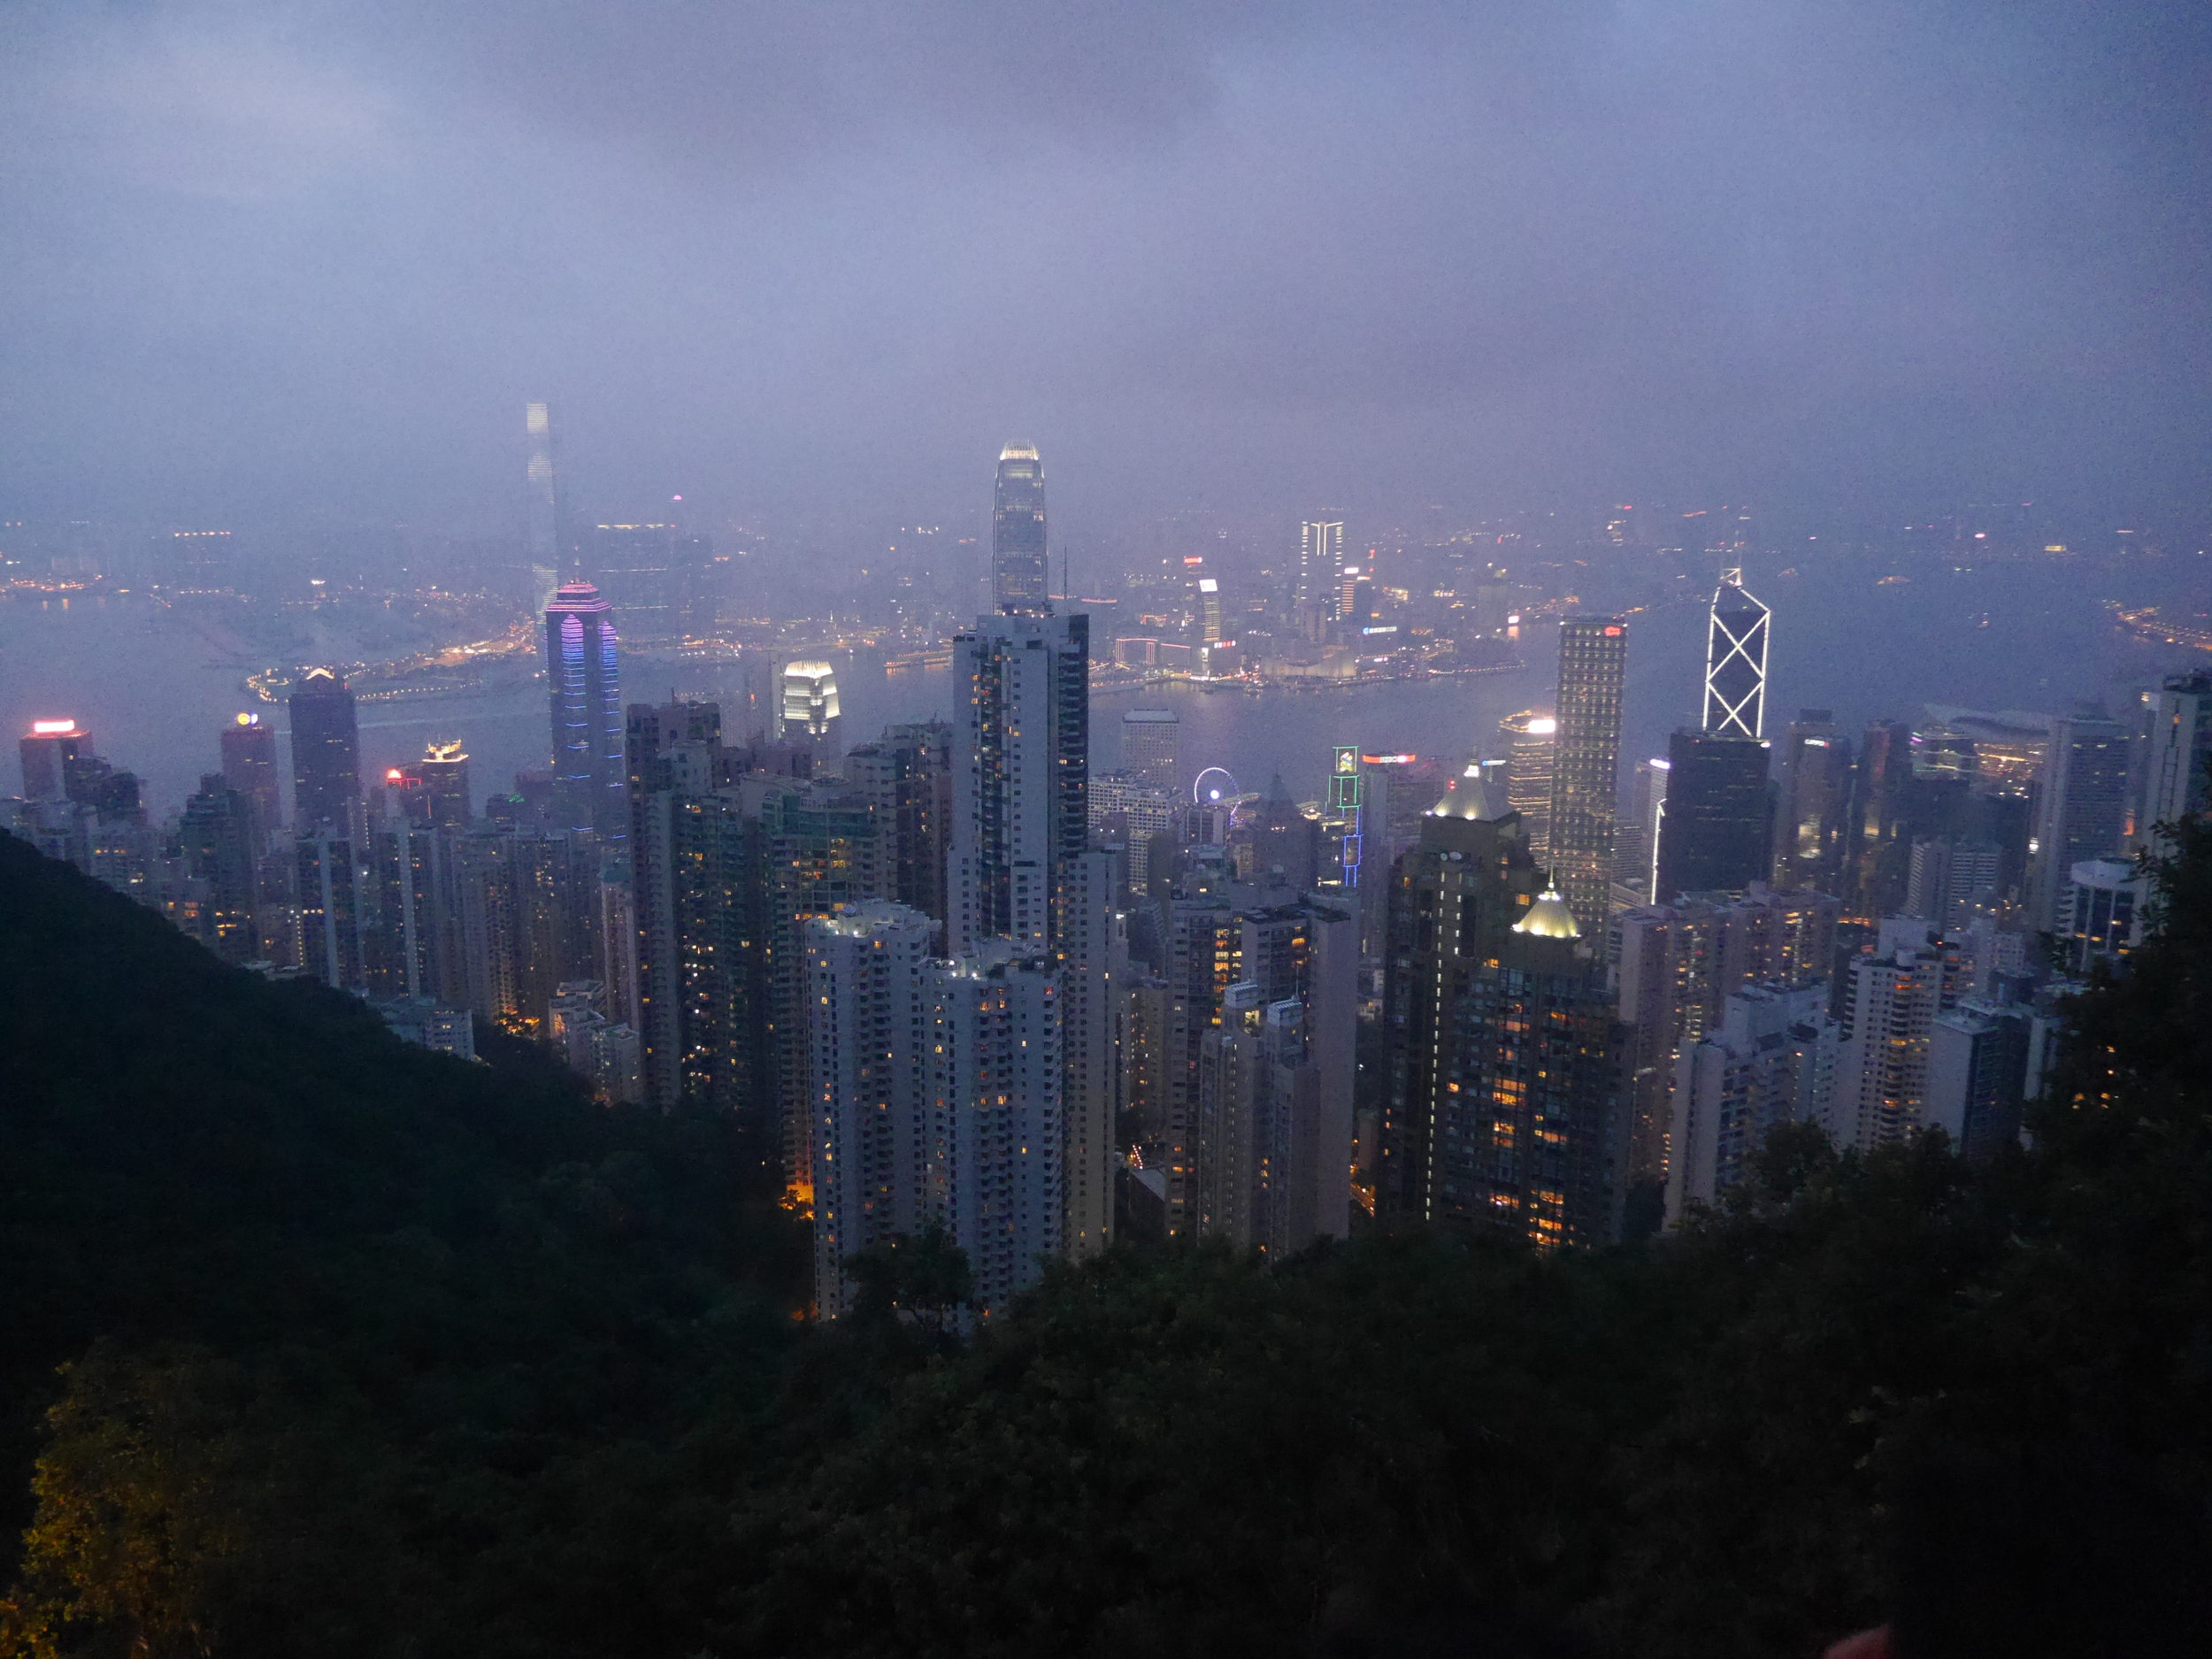 The Hong Kong skyline at night. Hong Kong Island in the foreground, Kowloon in the background.